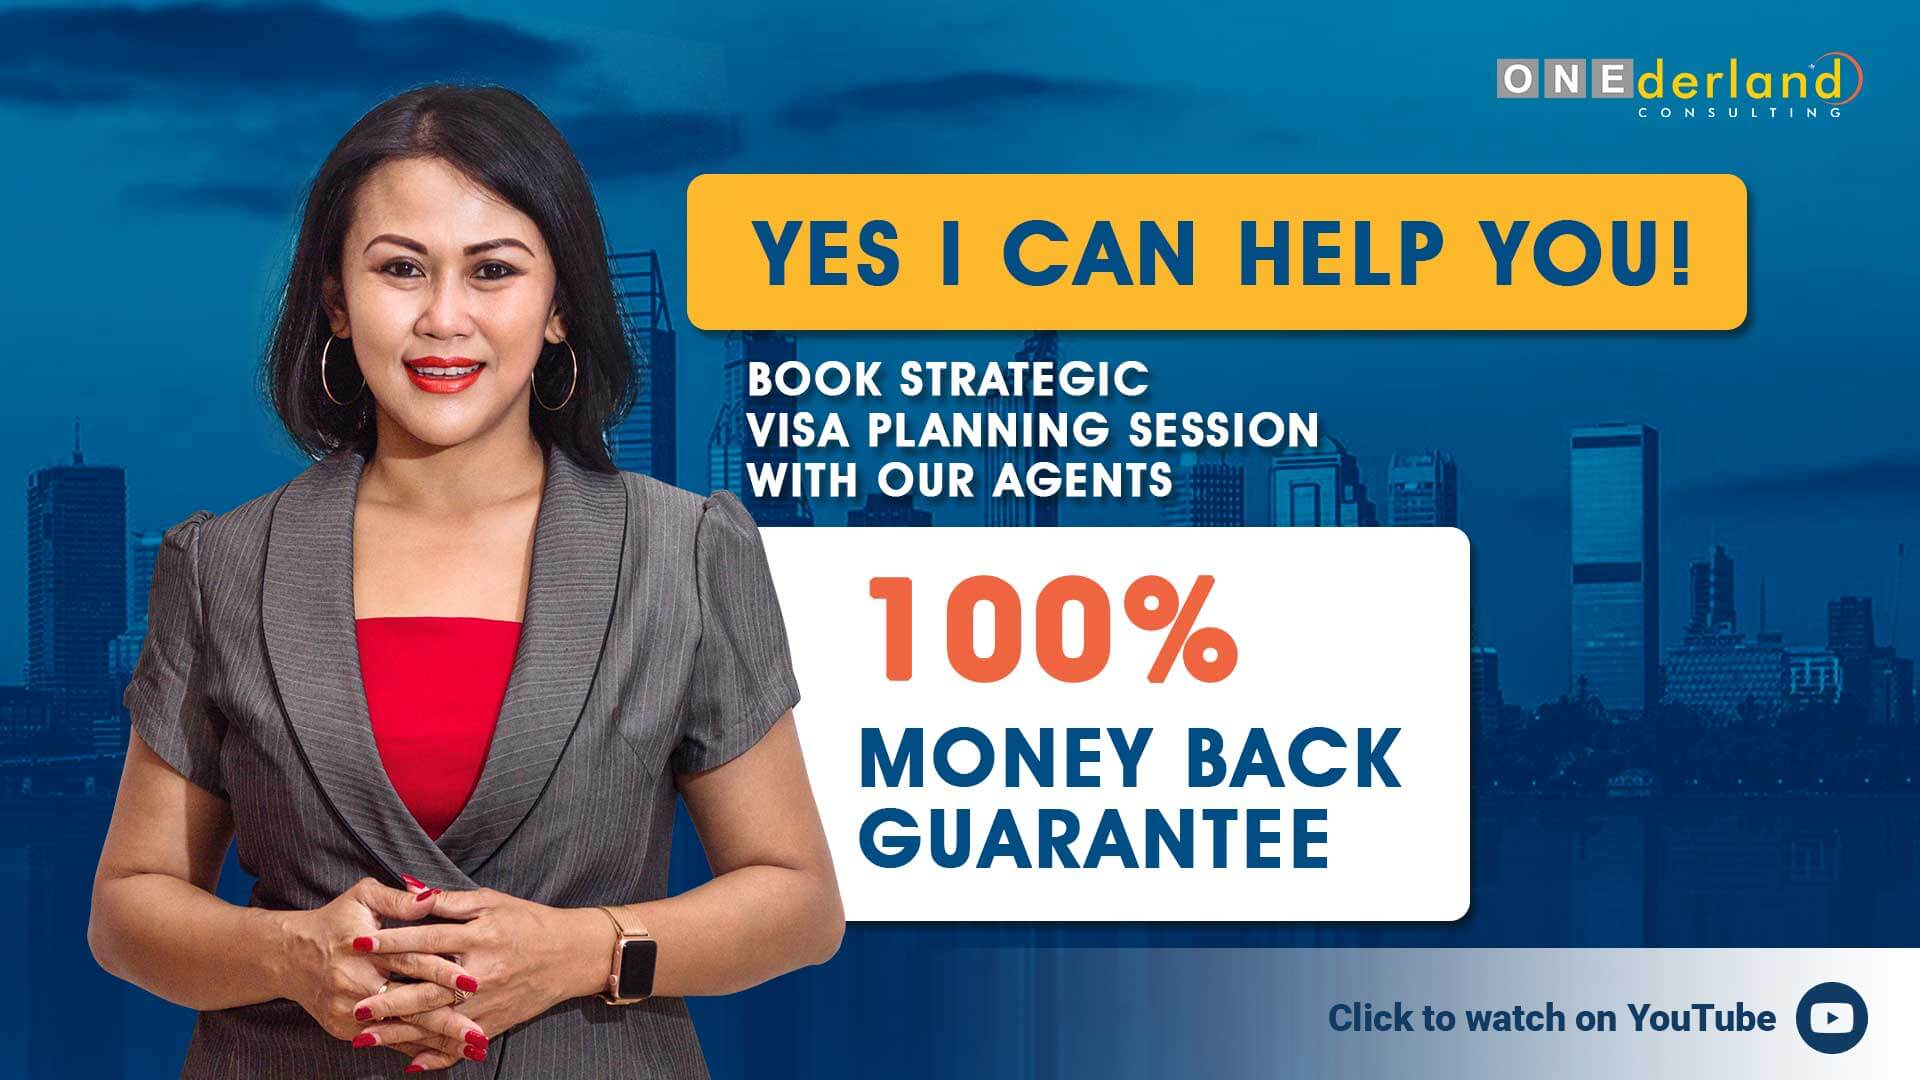 ONE derland Consulting 100% Money Back Guarante-3